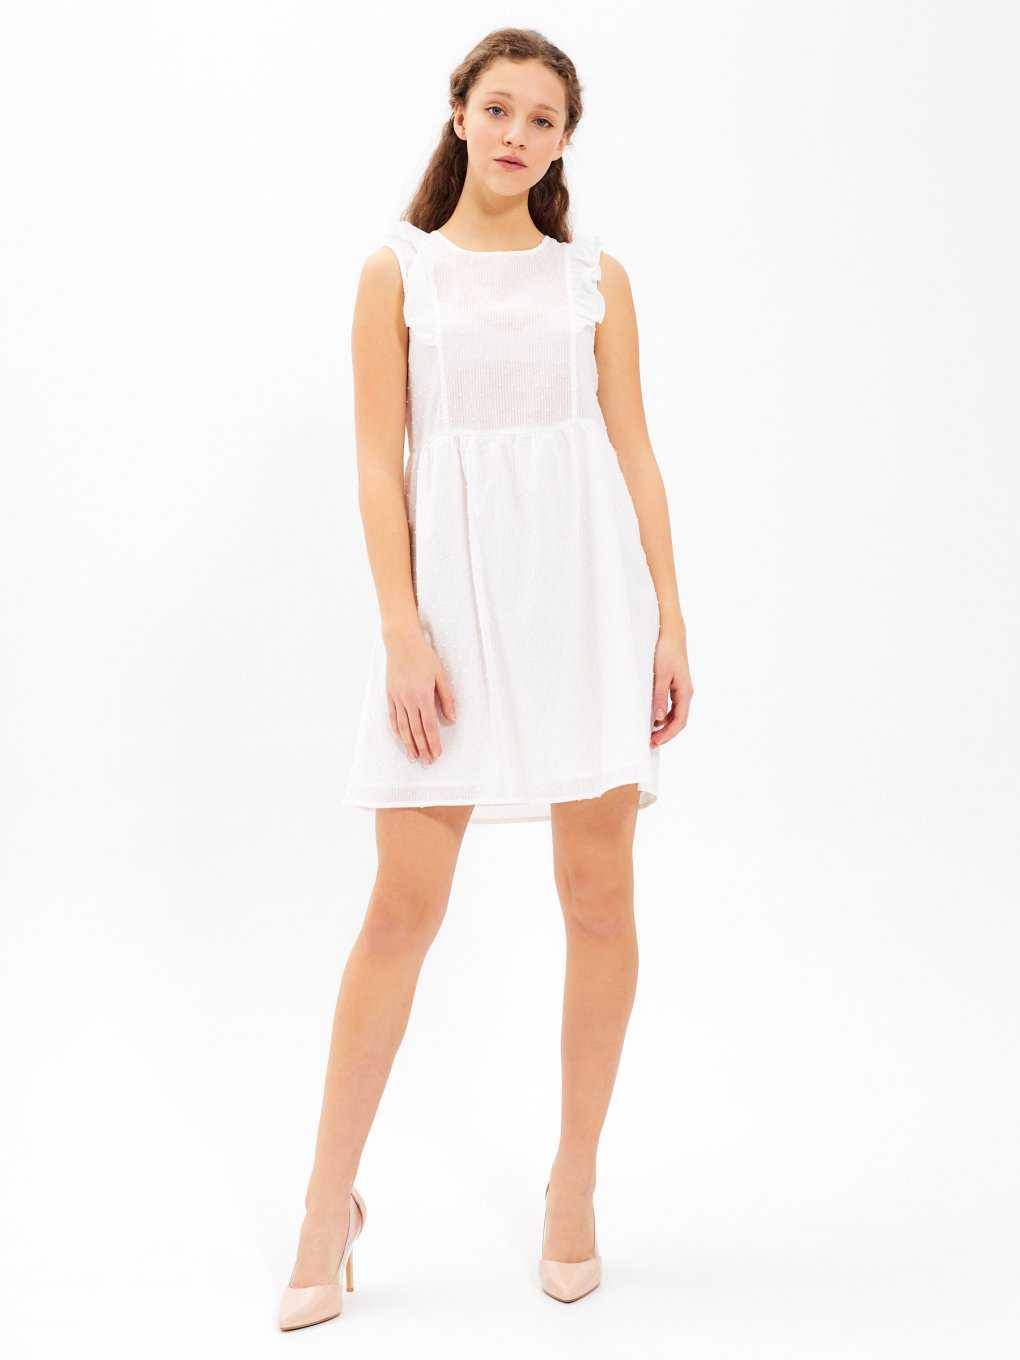 SLEEVLESS DRESS WITH RUFFLE